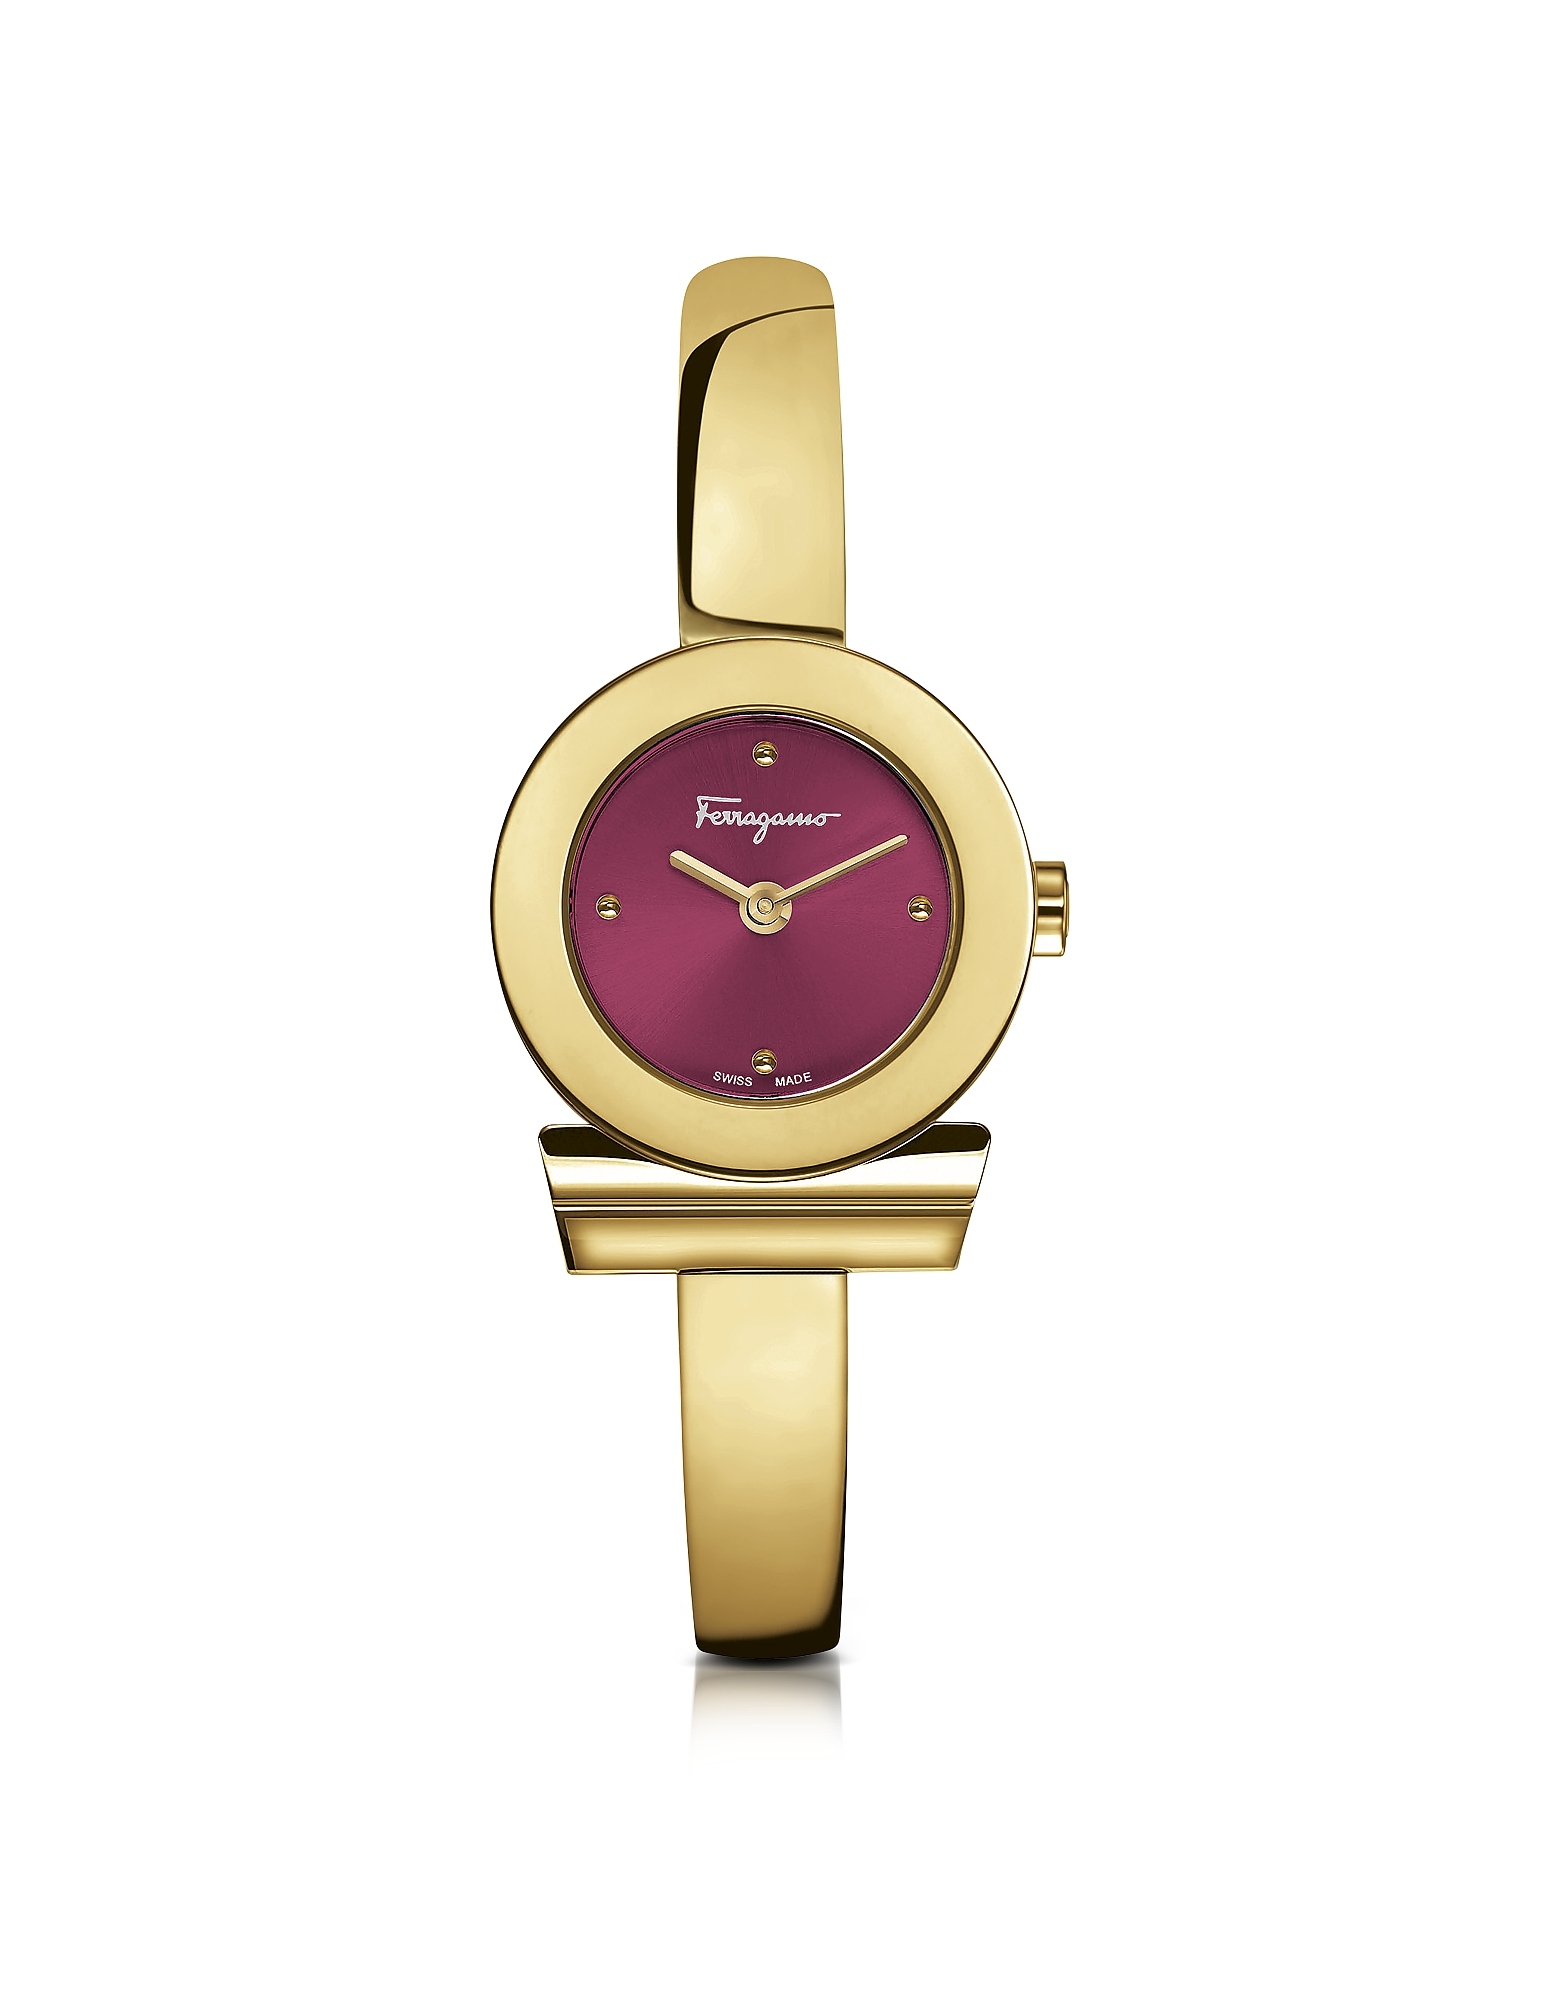 Salvatore Ferragamo Women's Watches, Gancino Gold IP Stainless Steel Women's Watch w/Burgundy Dial